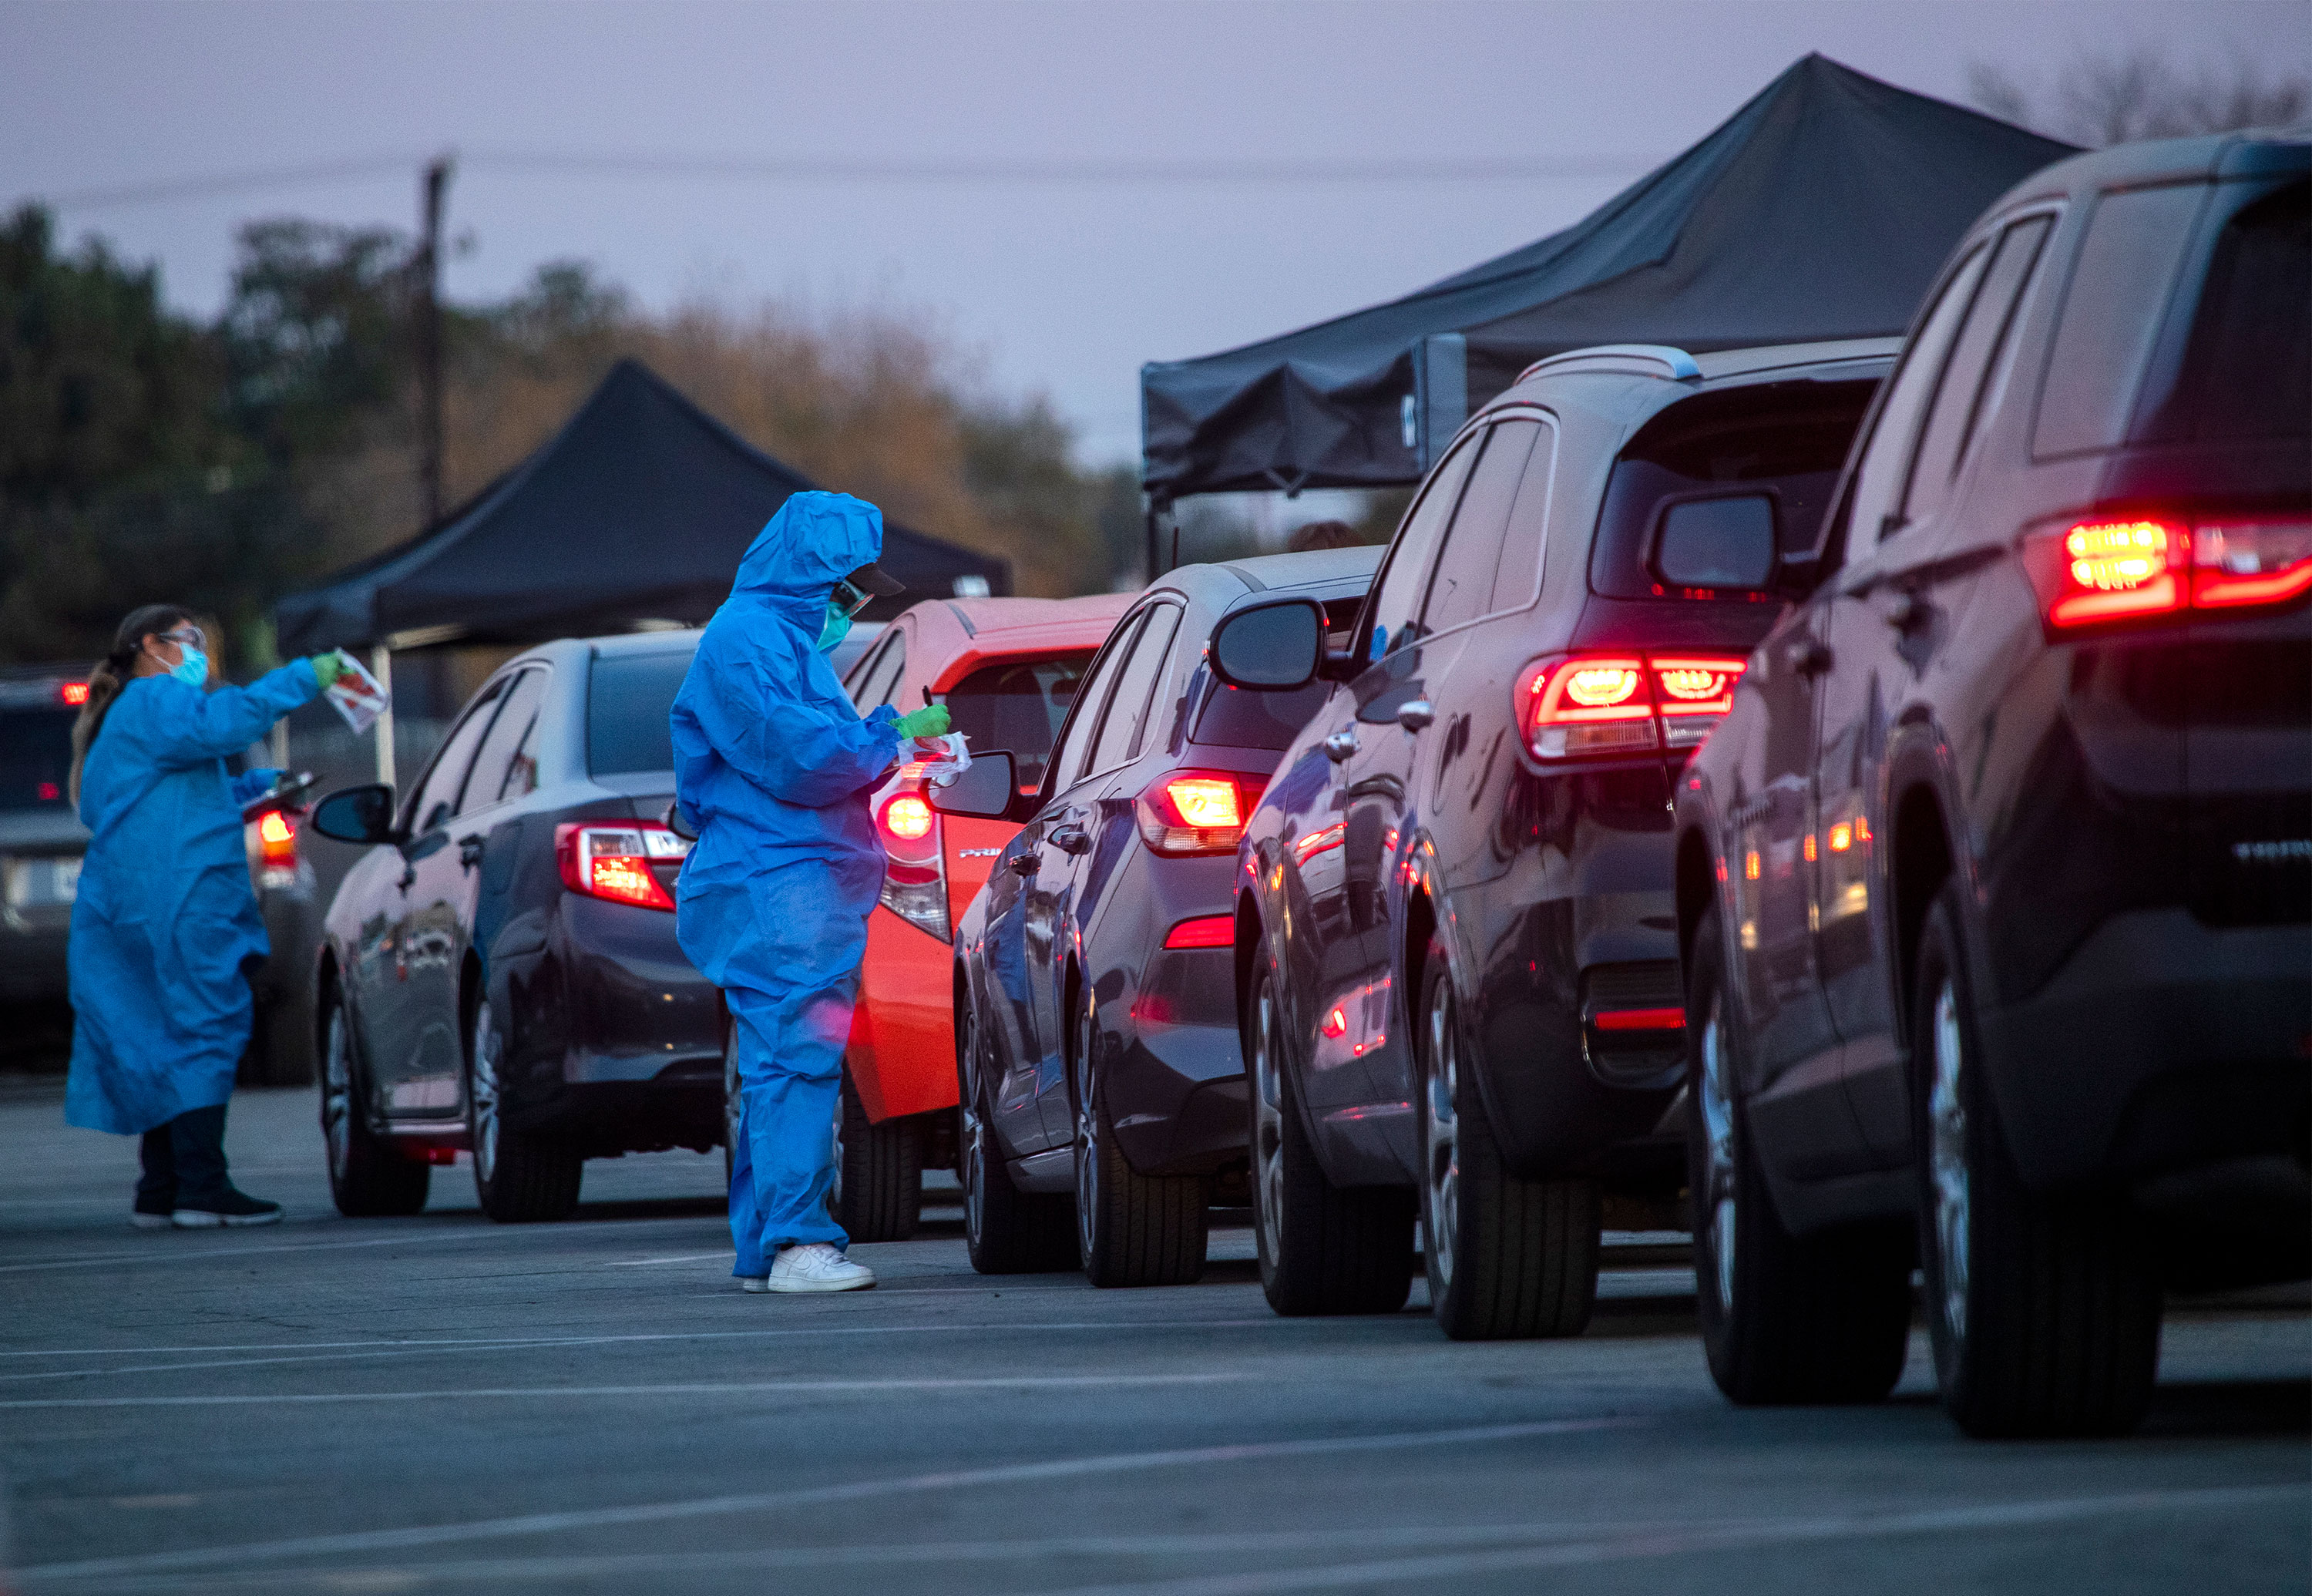 Health care workers hand out Covid-19 tests to motorists on December 9 in Long Beach, California.